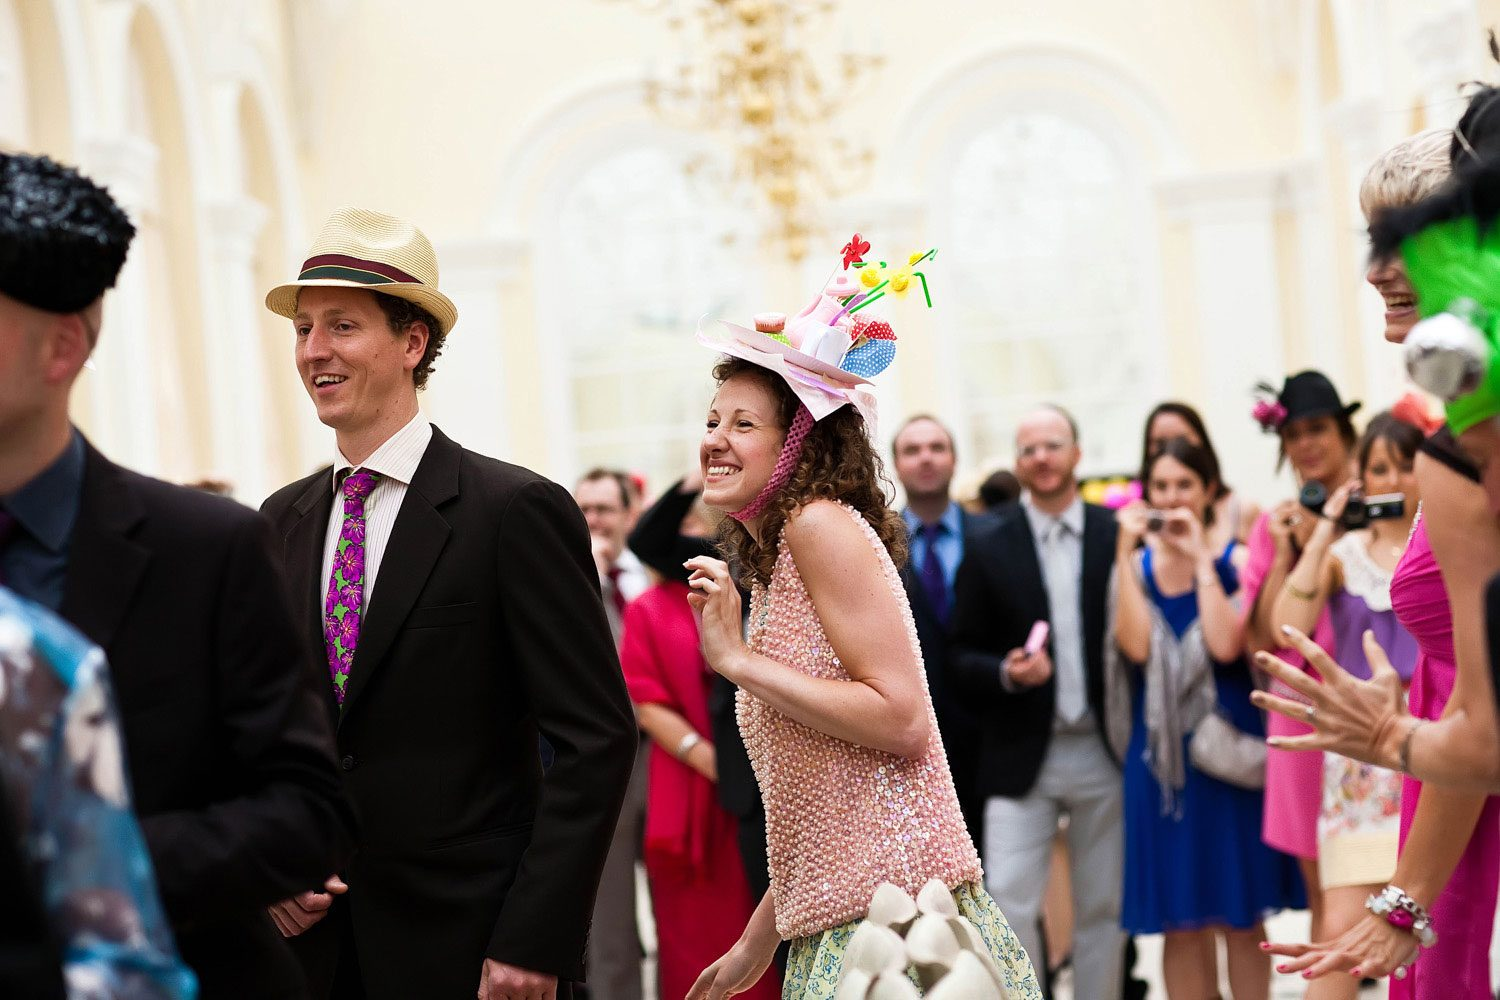 wedding guests dance in designer wedding hats